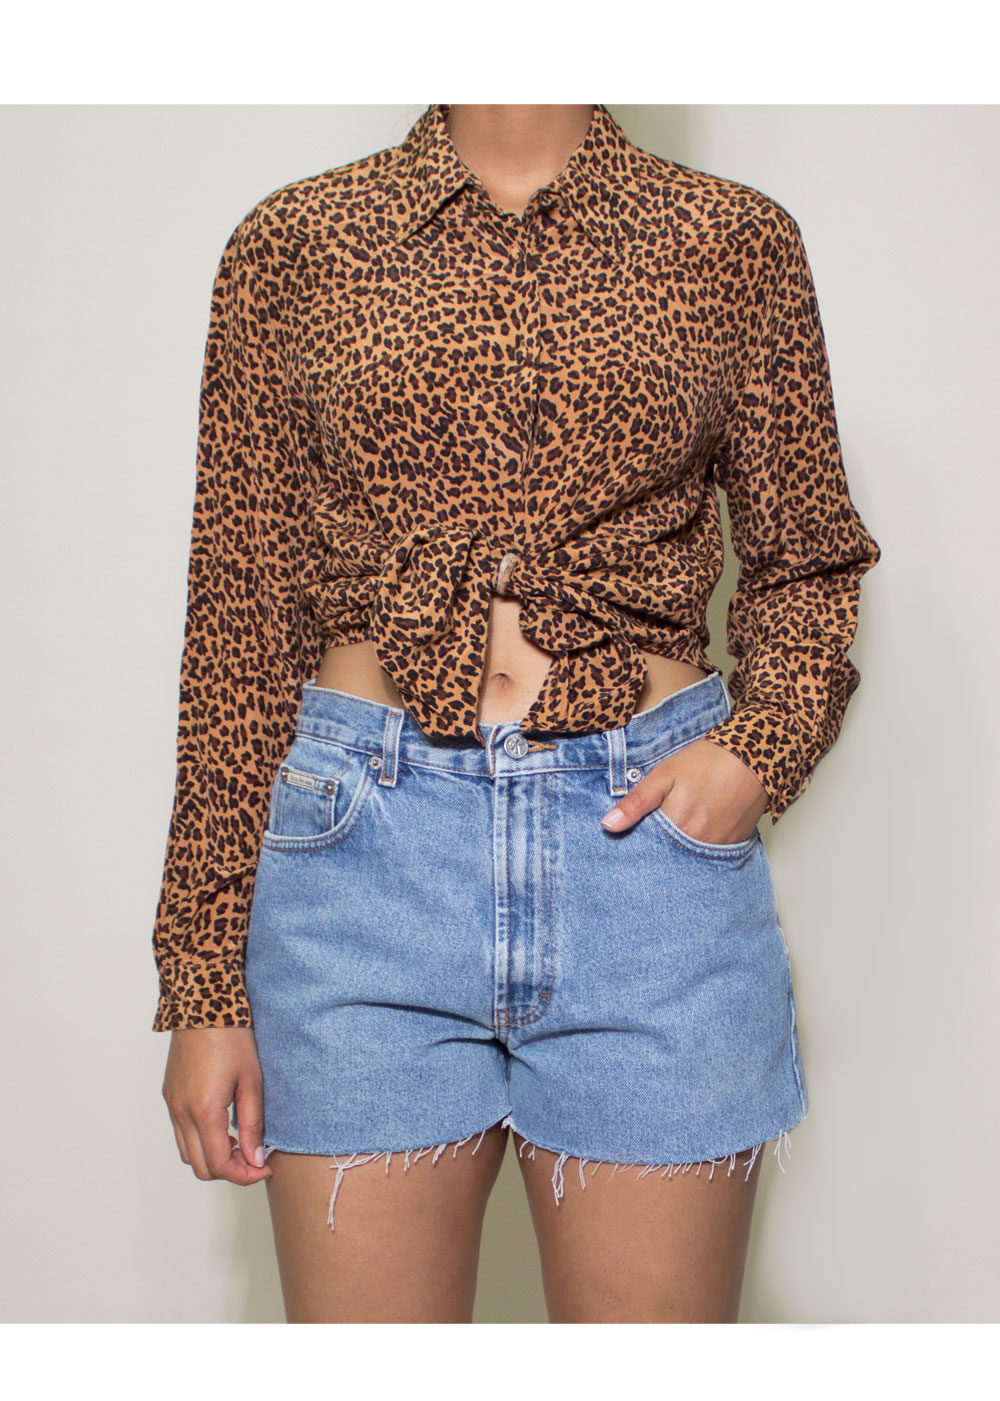 Wild Thoughts Blouse